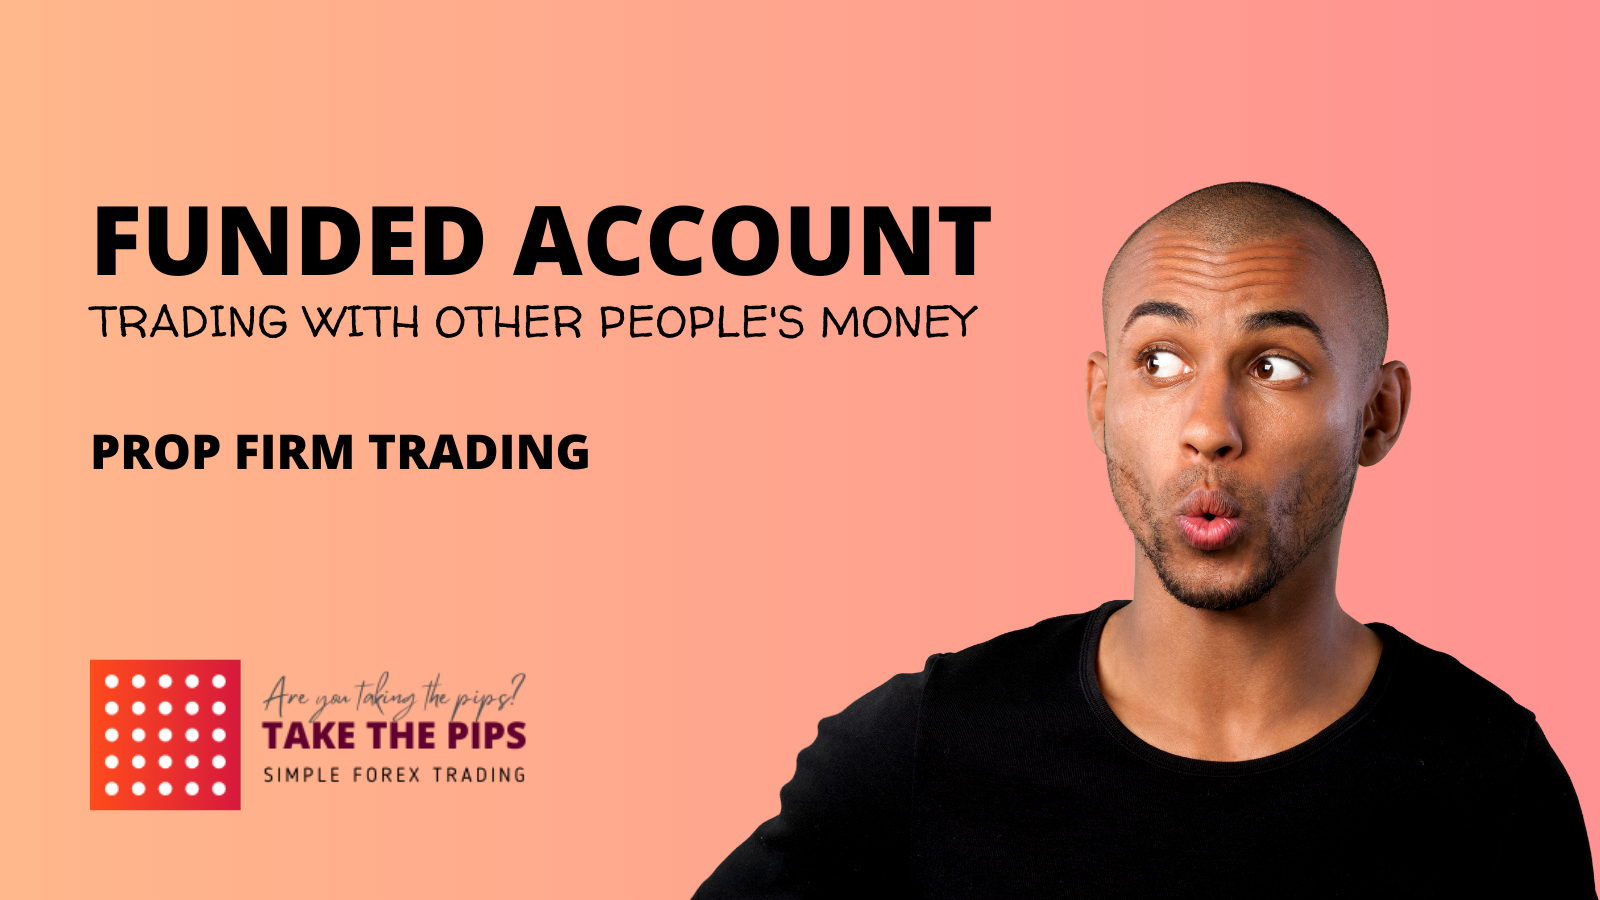 FUNDED ACCOUNT - Prop Firm Trading